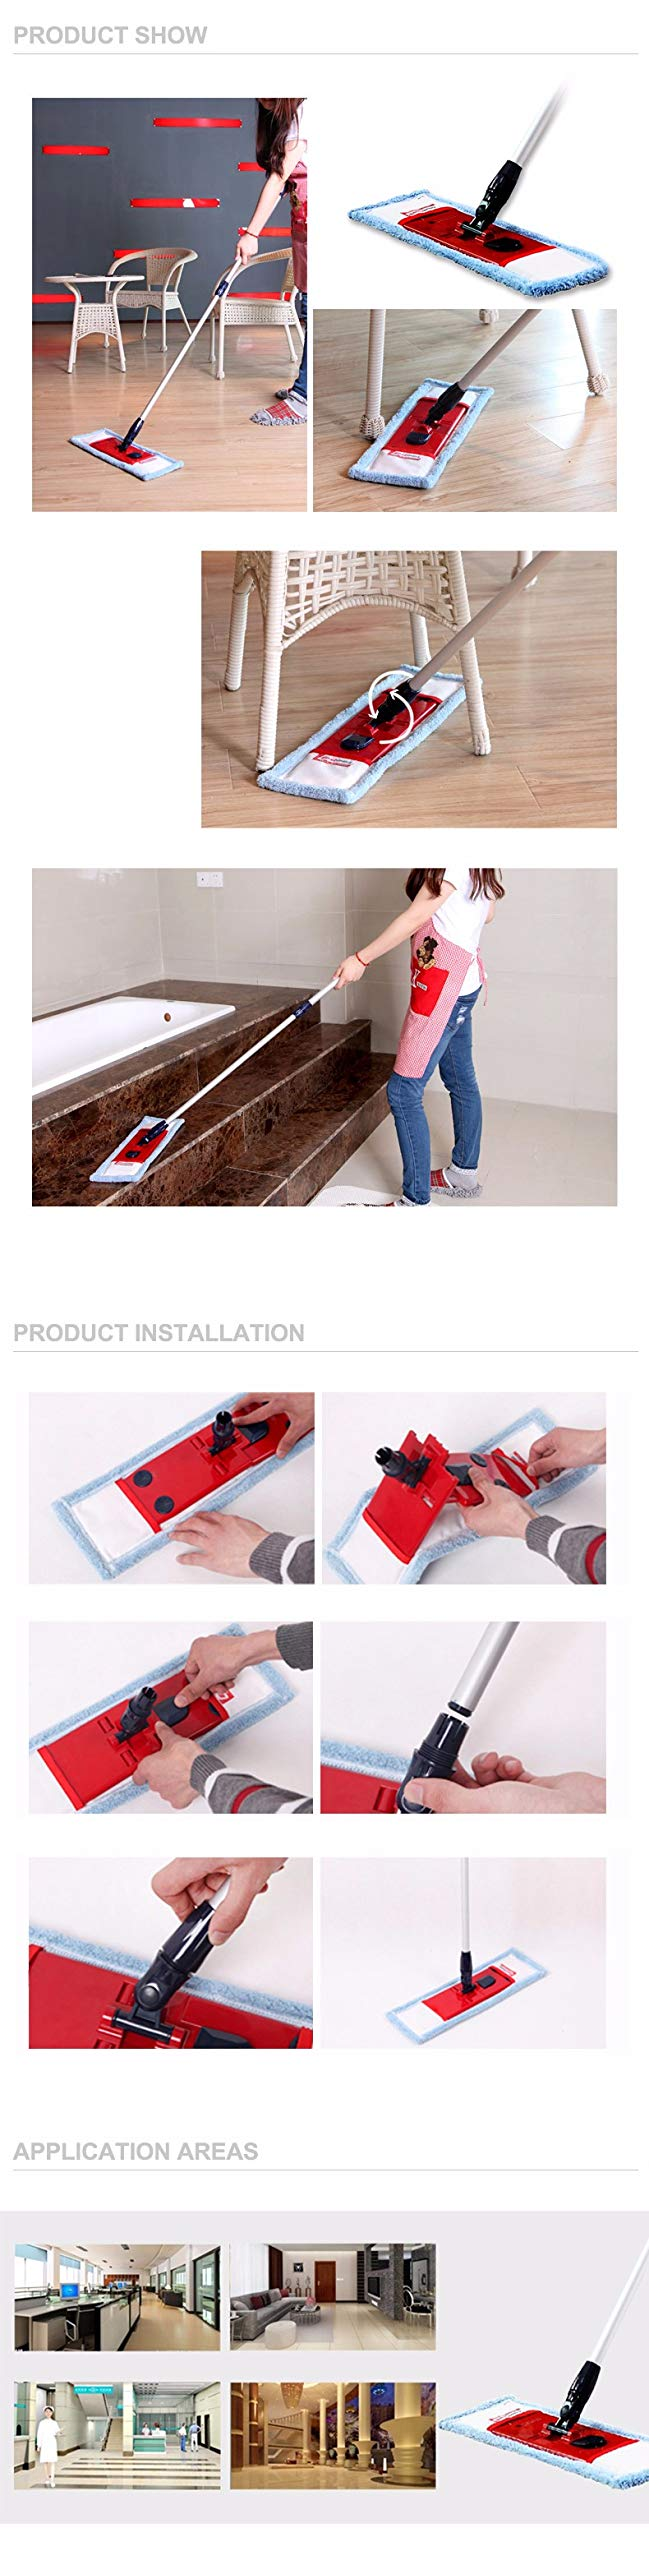 QIANLAI East Flat Telescopic mop with Pole Microfiber Cloth Towel Home Floor Cleaning Kitchen Living Room Flat mop Cleaning Tools